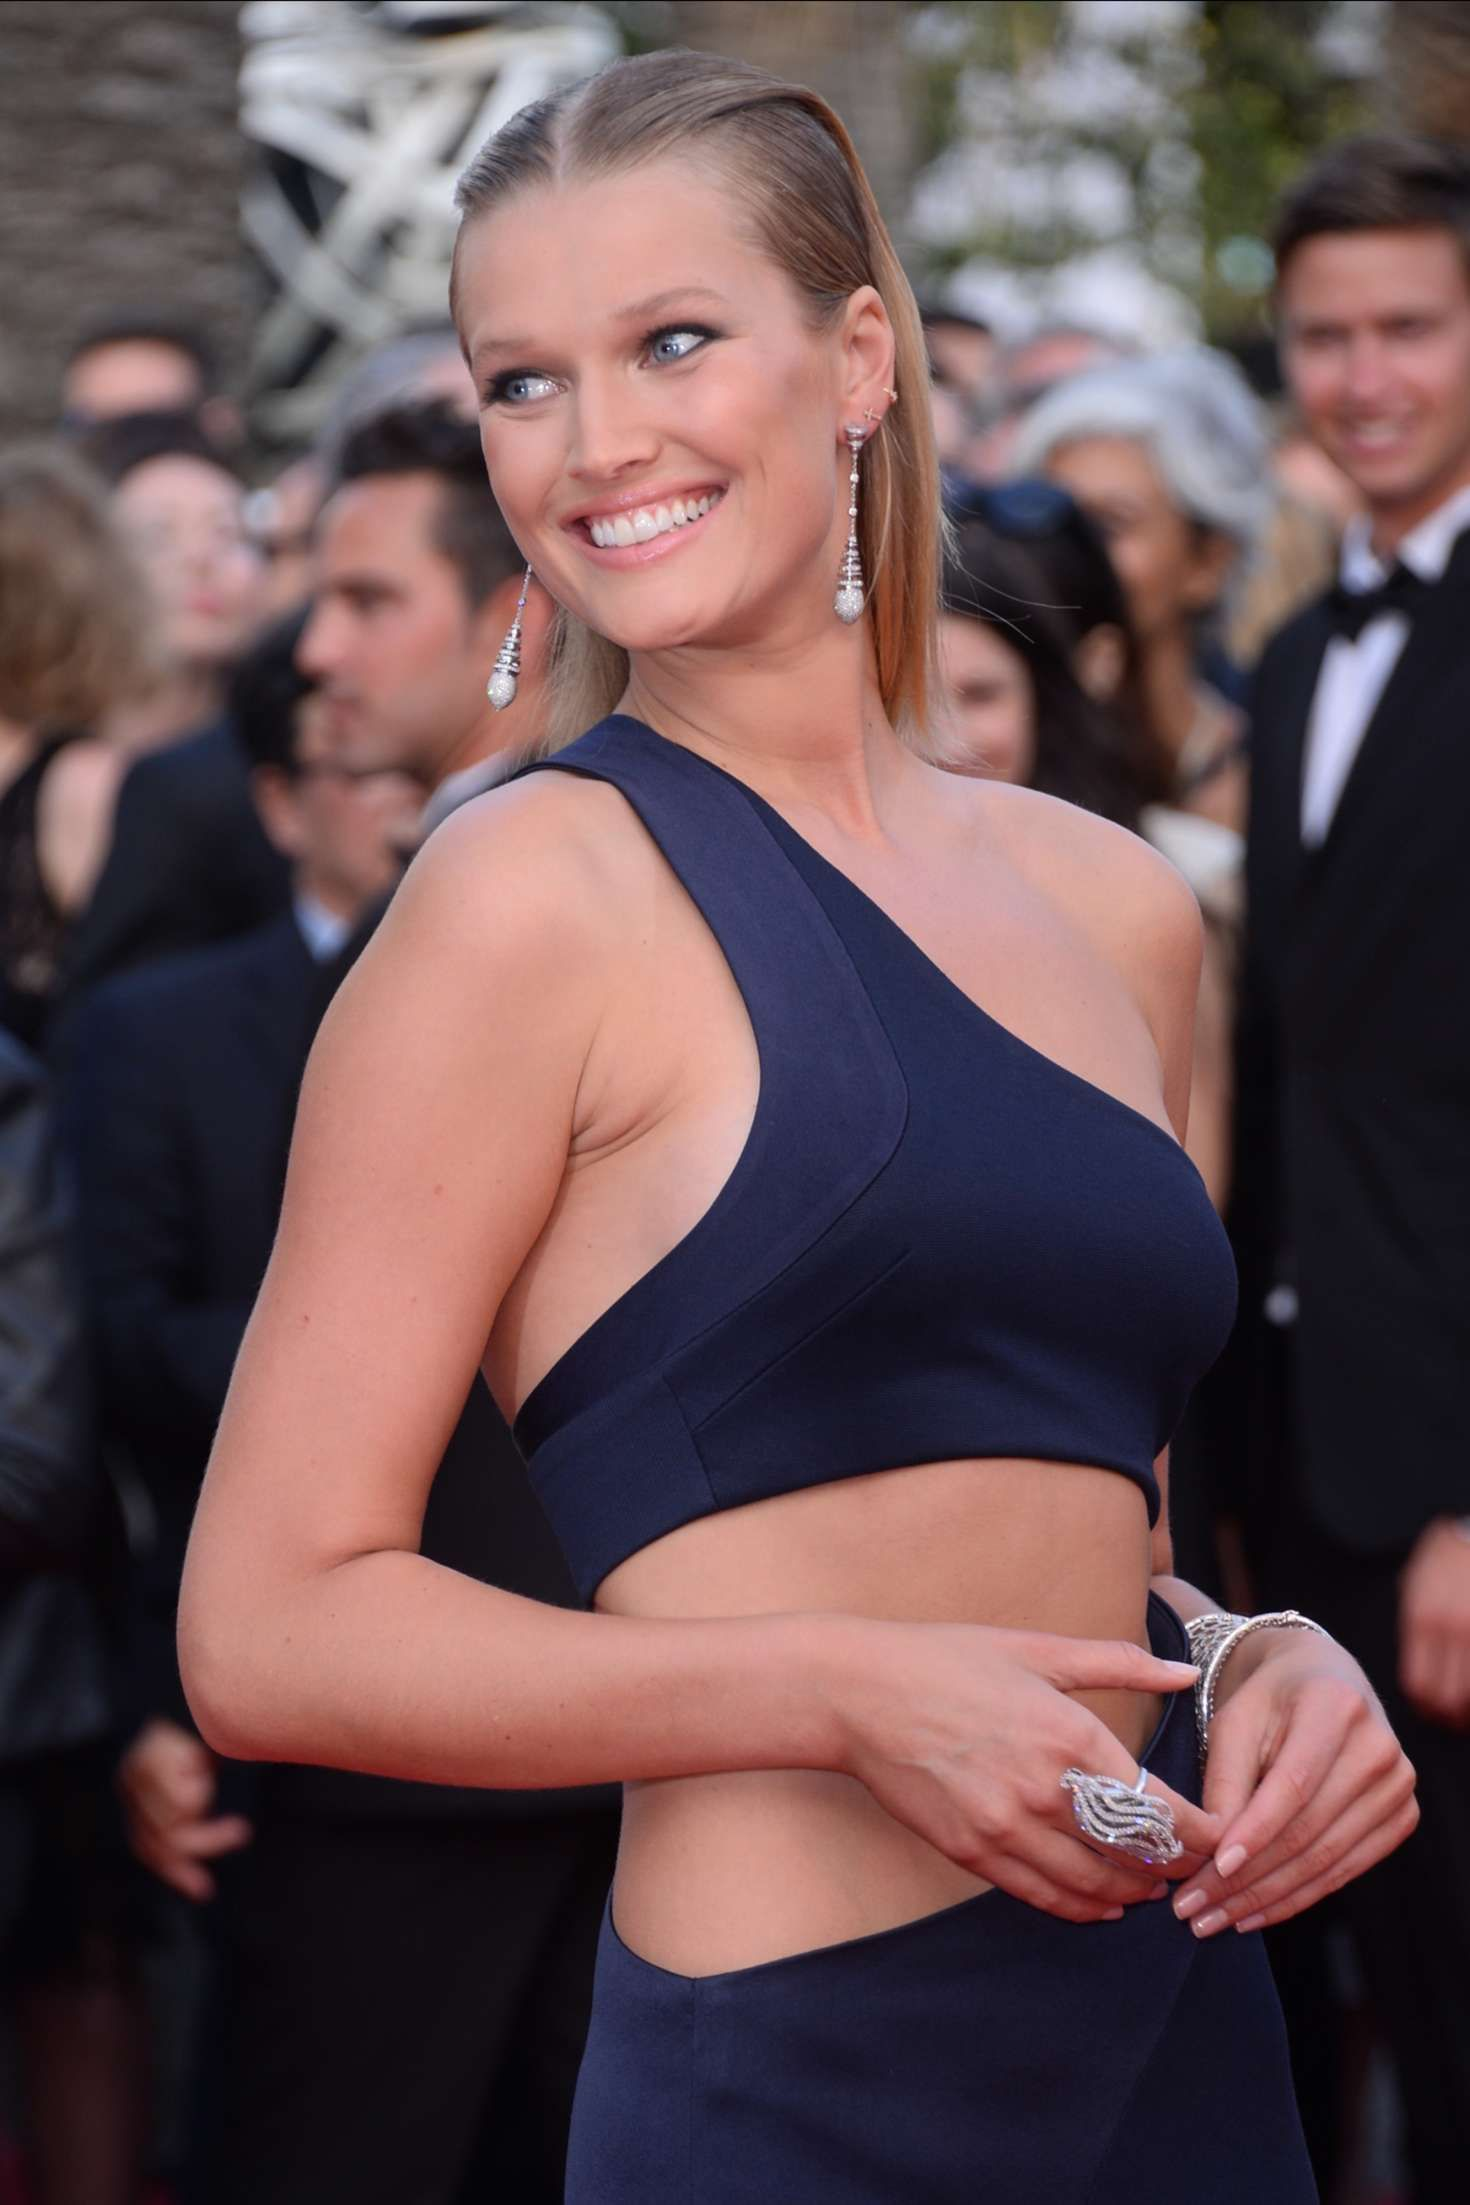 Celebrity Antonia Toni Garrn naked (15 photo), Pussy, Fappening, Instagram, butt 2015